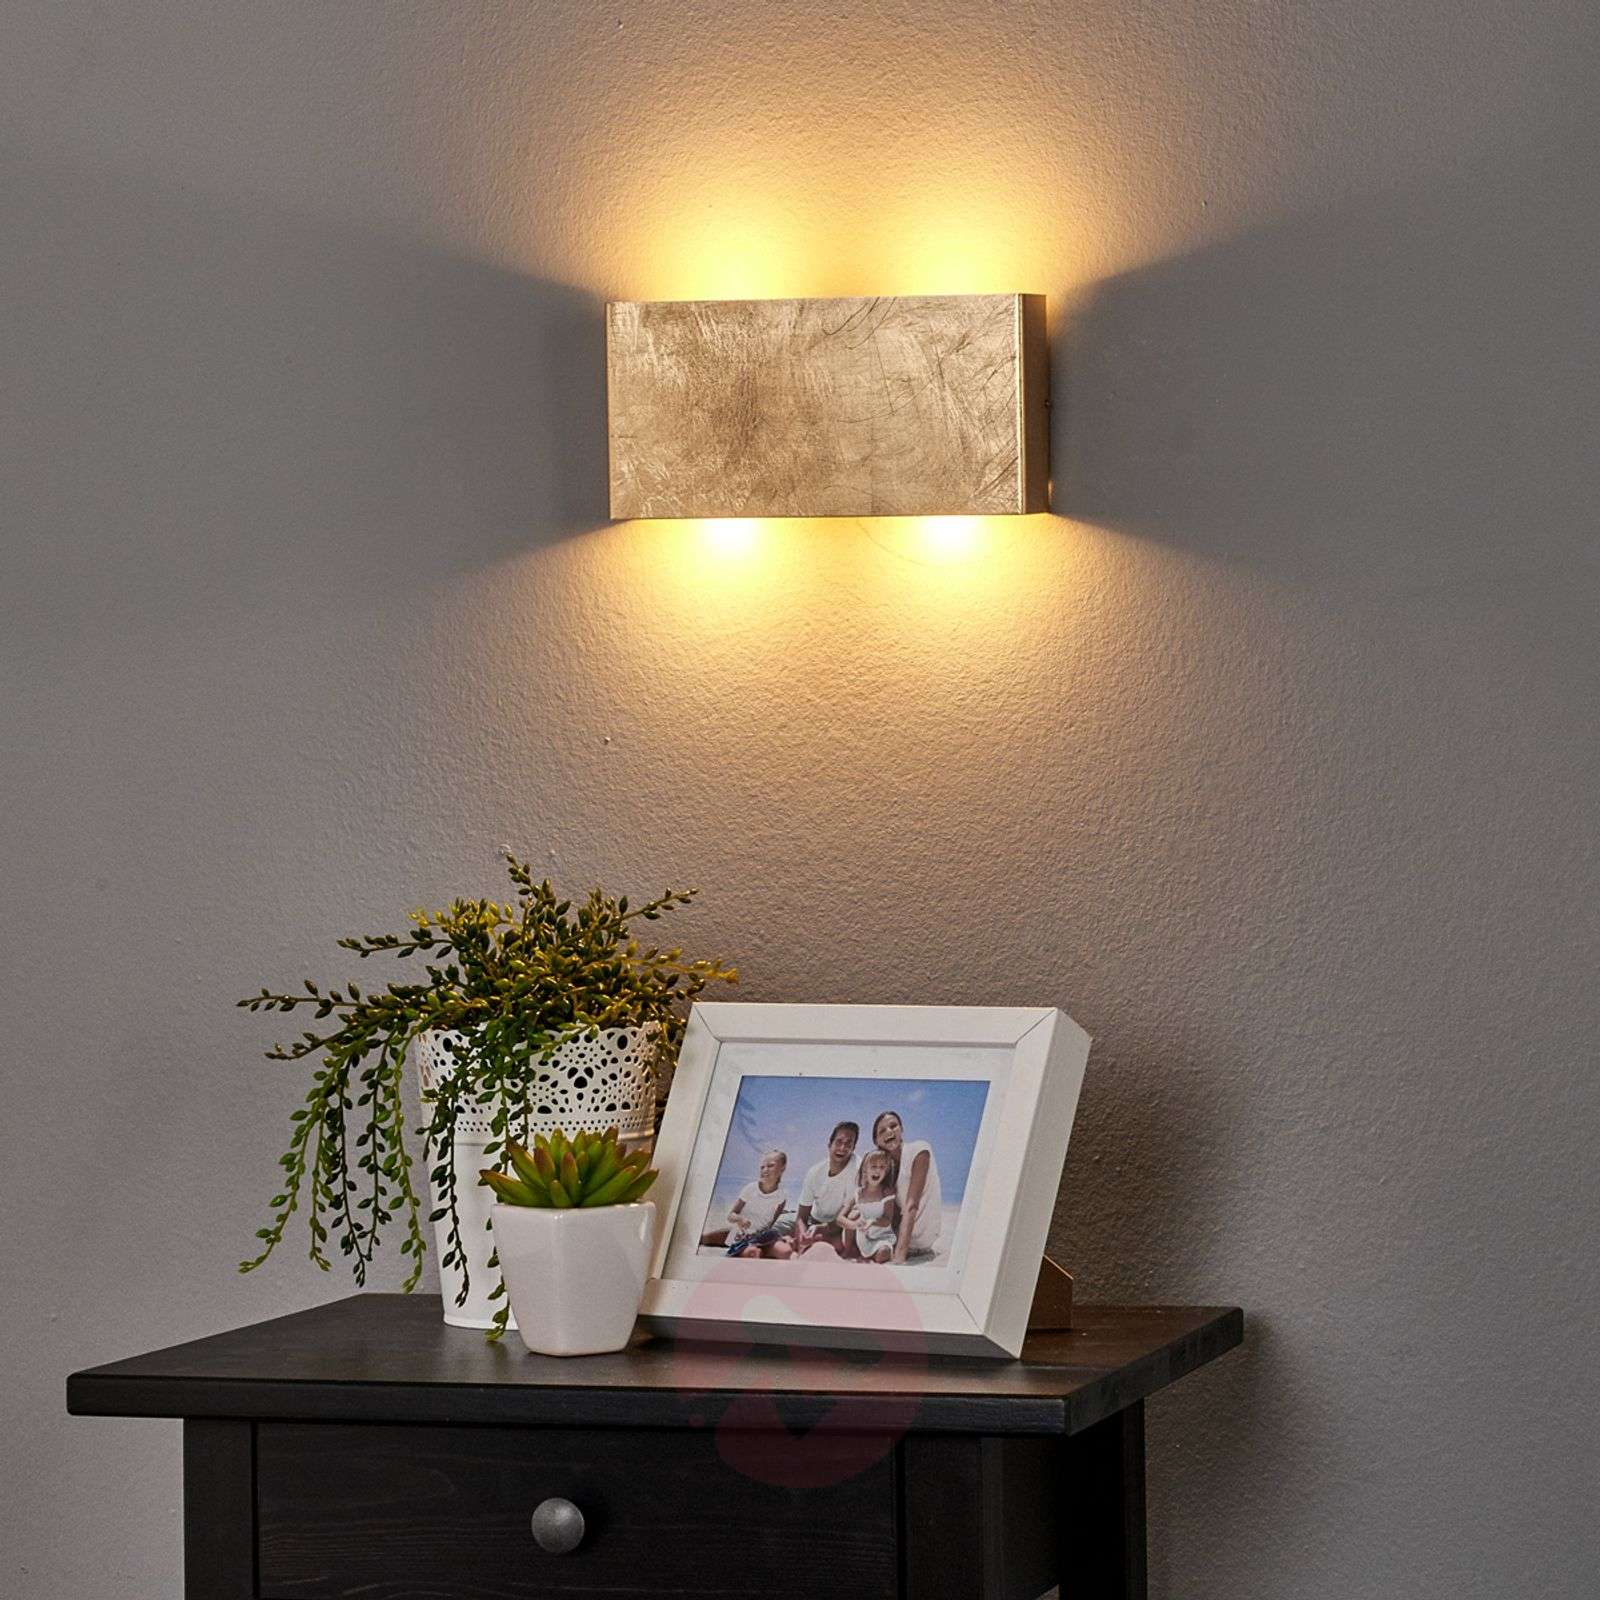 Golden maja led wall light dimmable lights golden maja led wall light dimmable 6722197 01 aloadofball Image collections